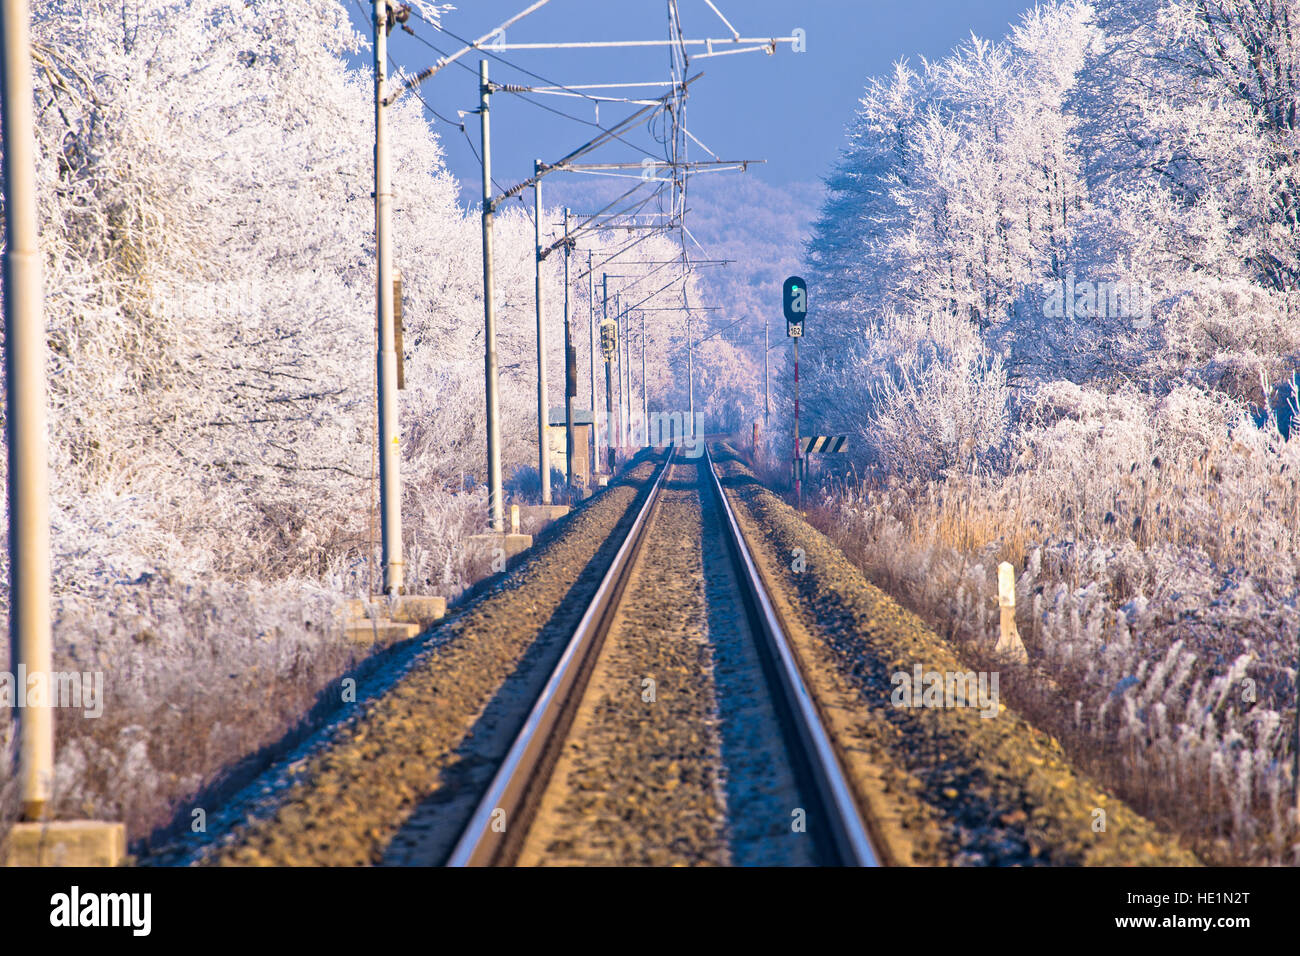 Rail track in winter landscape view, Croatia - Stock Image